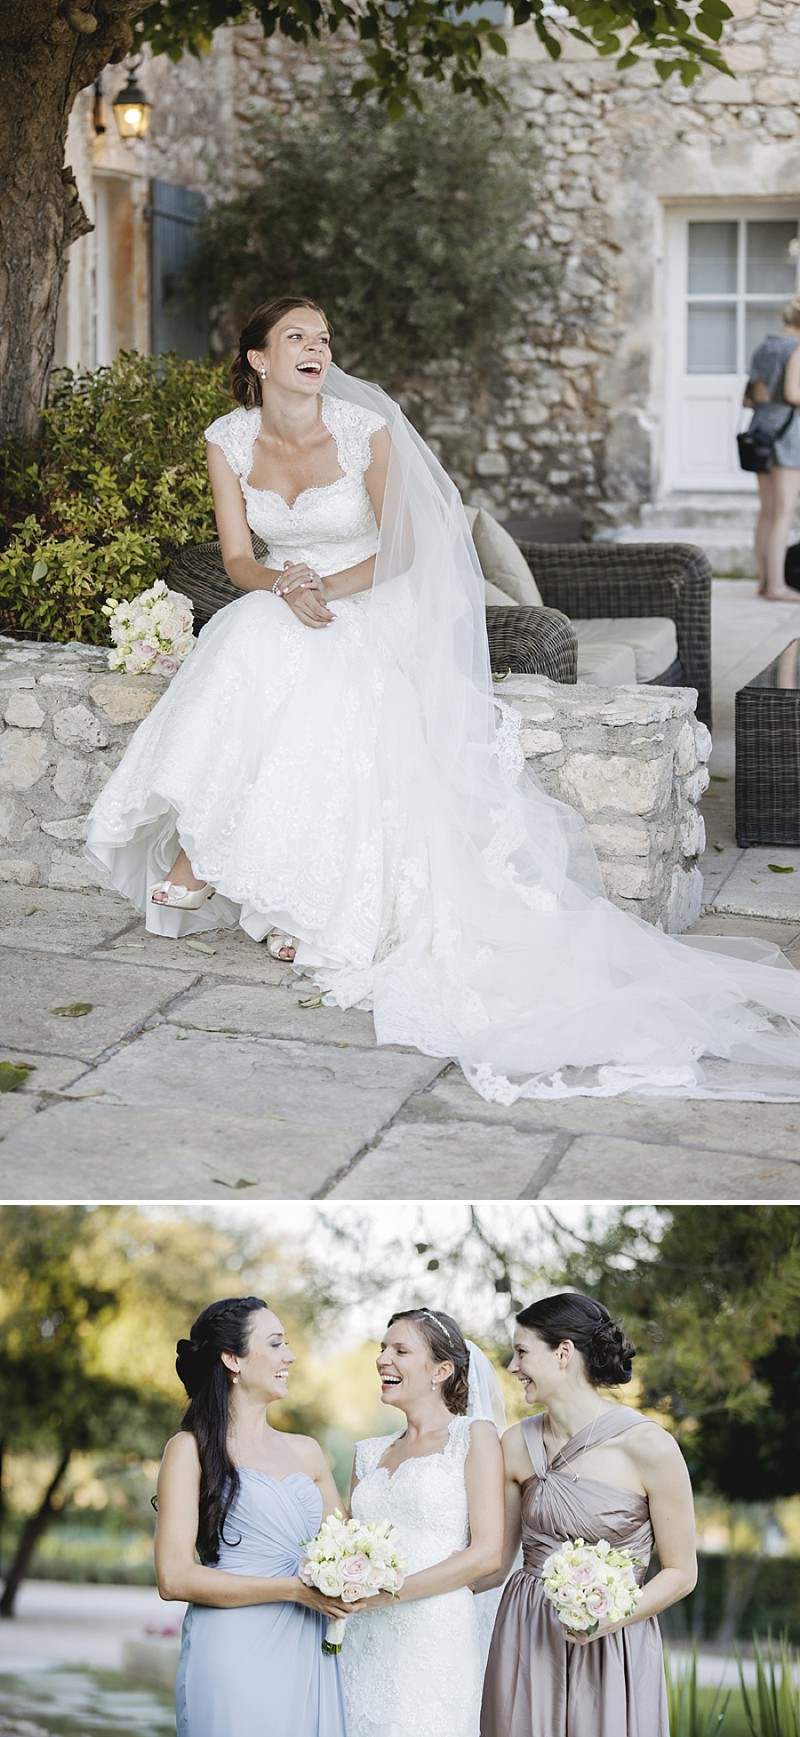 Elegant Wedding At Le Mas De La Rose Provence With Bride In Lace Fishtail Gown By Pronovias And Groom In Navy Armani Tuxedo With Images From Jo Hastings Wedding Photography 0010 La Sophistication Et Simplicité En Provence.